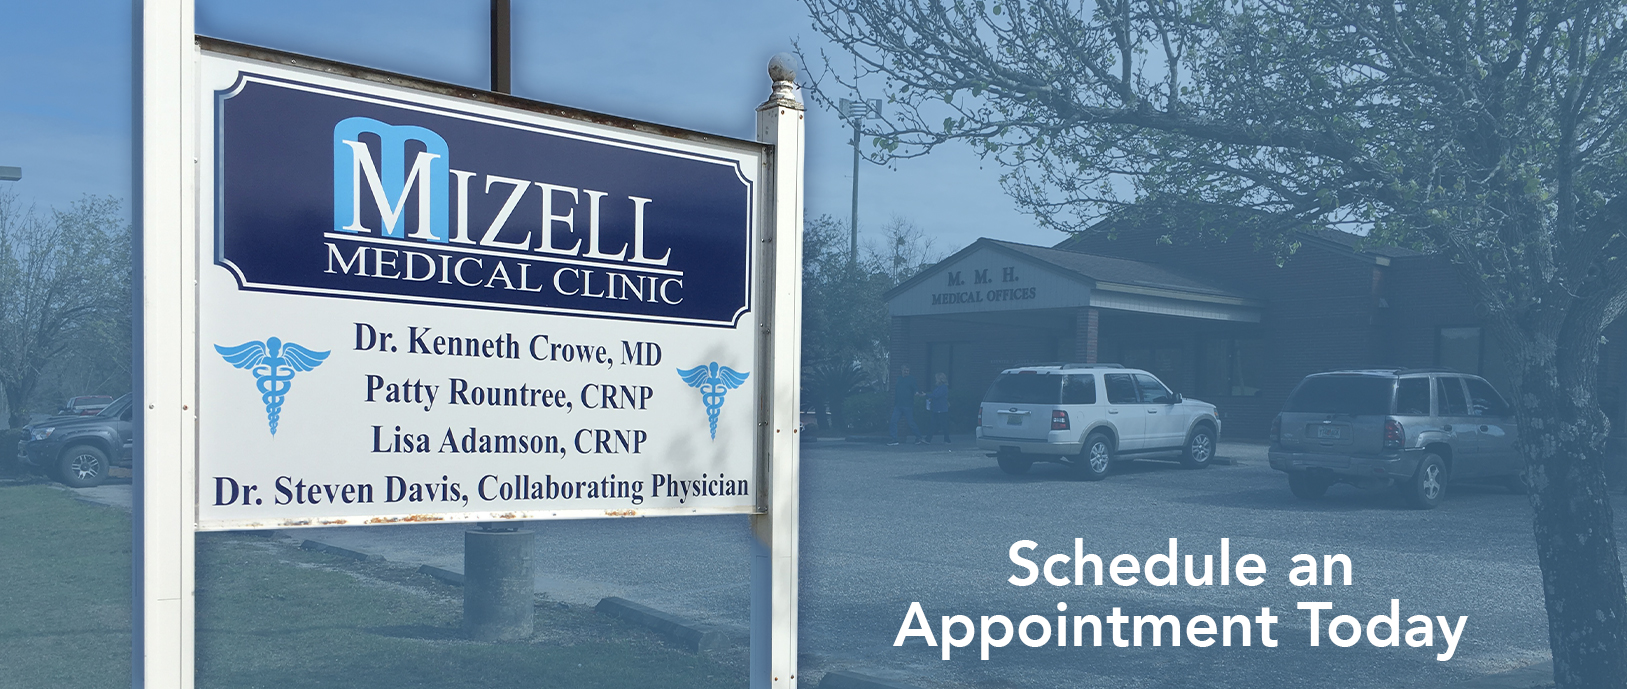 The Mizell Memorial Hospital Medical Offices building is in the background and the sign is in the front with the doctors listed, Kenneth Crowe, Patty Rountree, Lisa Adamson, and Steven Davis. Schedule an appointment today